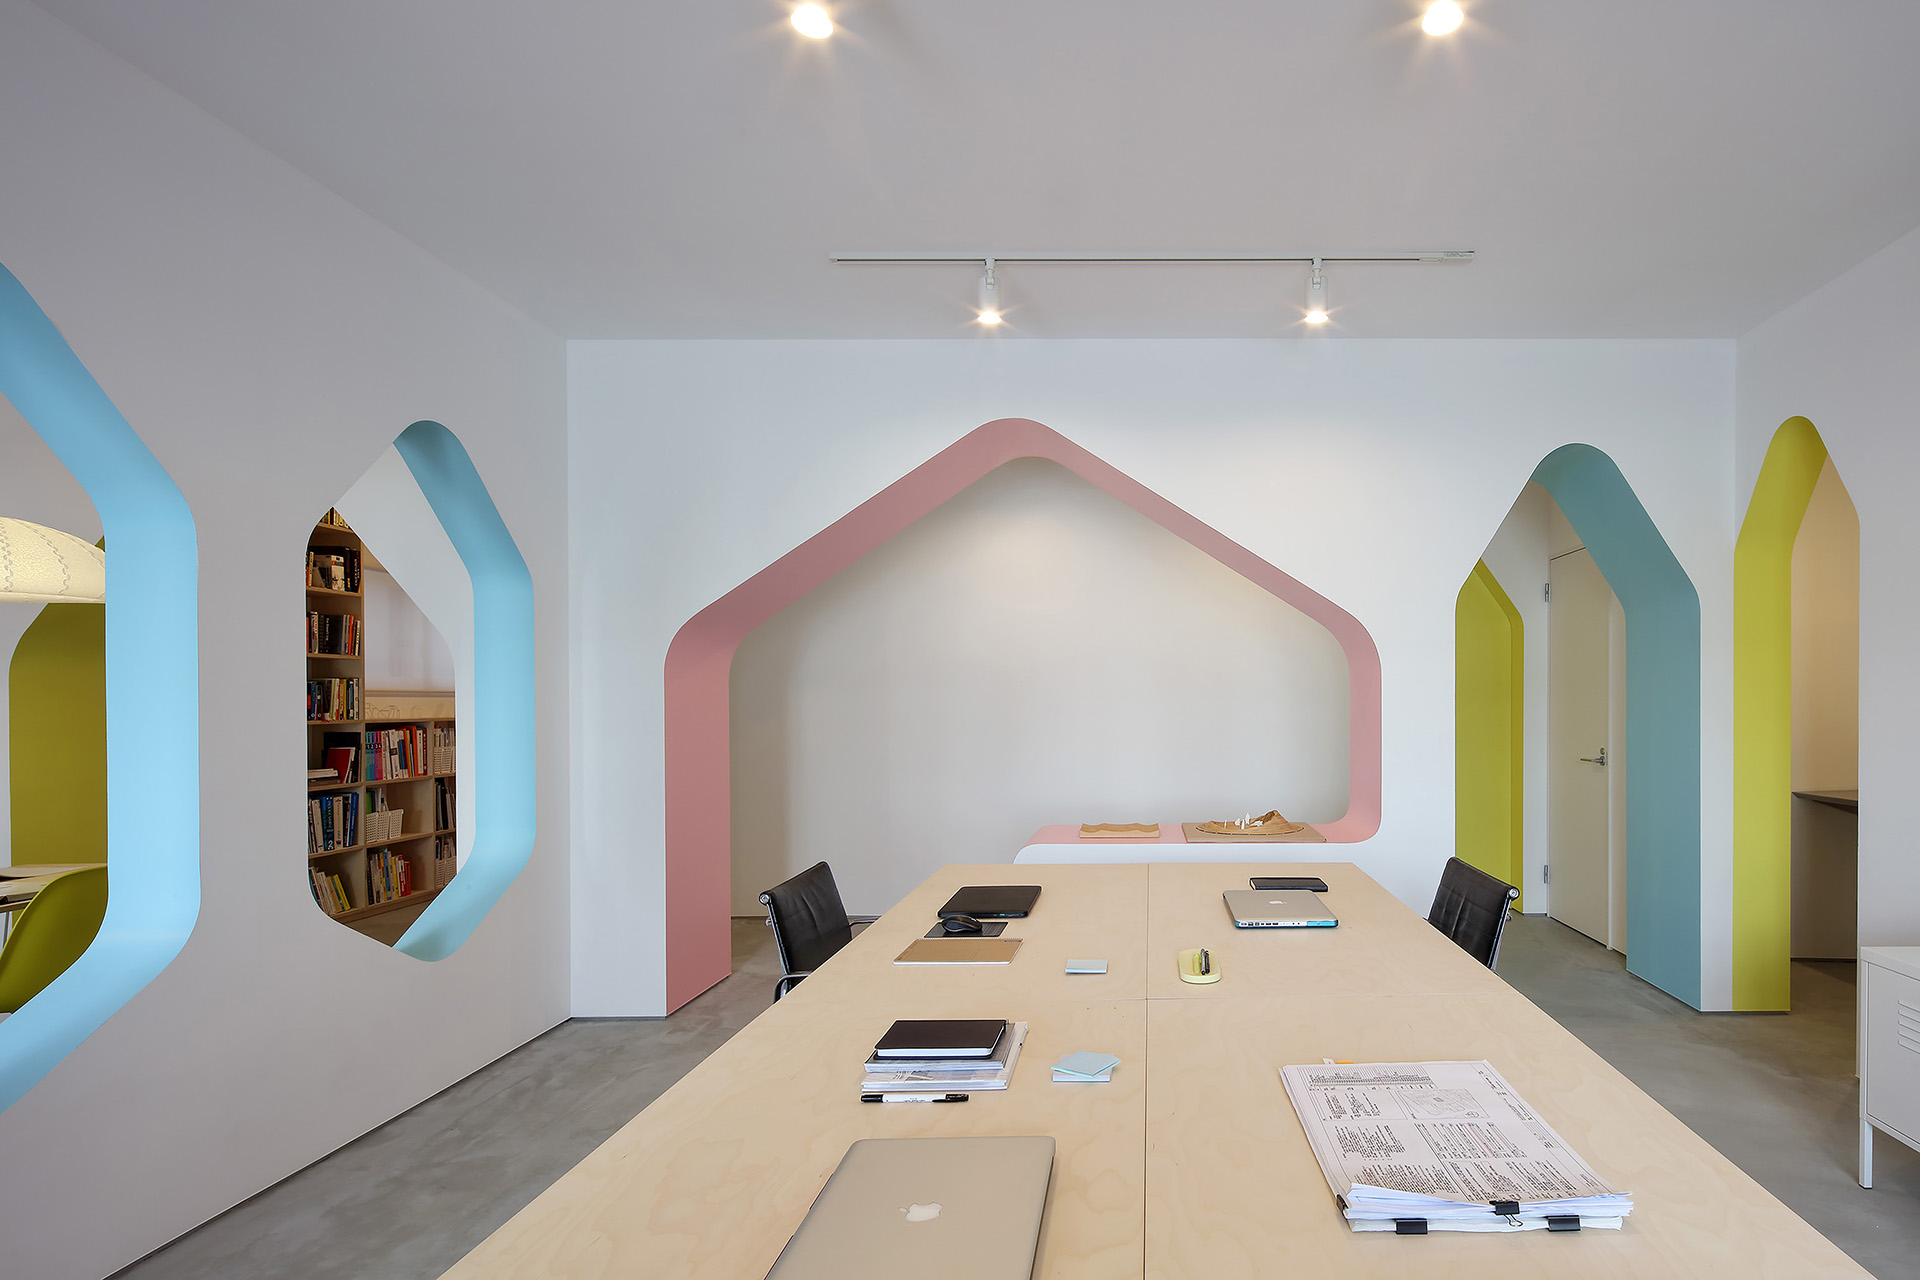 House of Many Arches by 24d-studio, Kobe, Japan